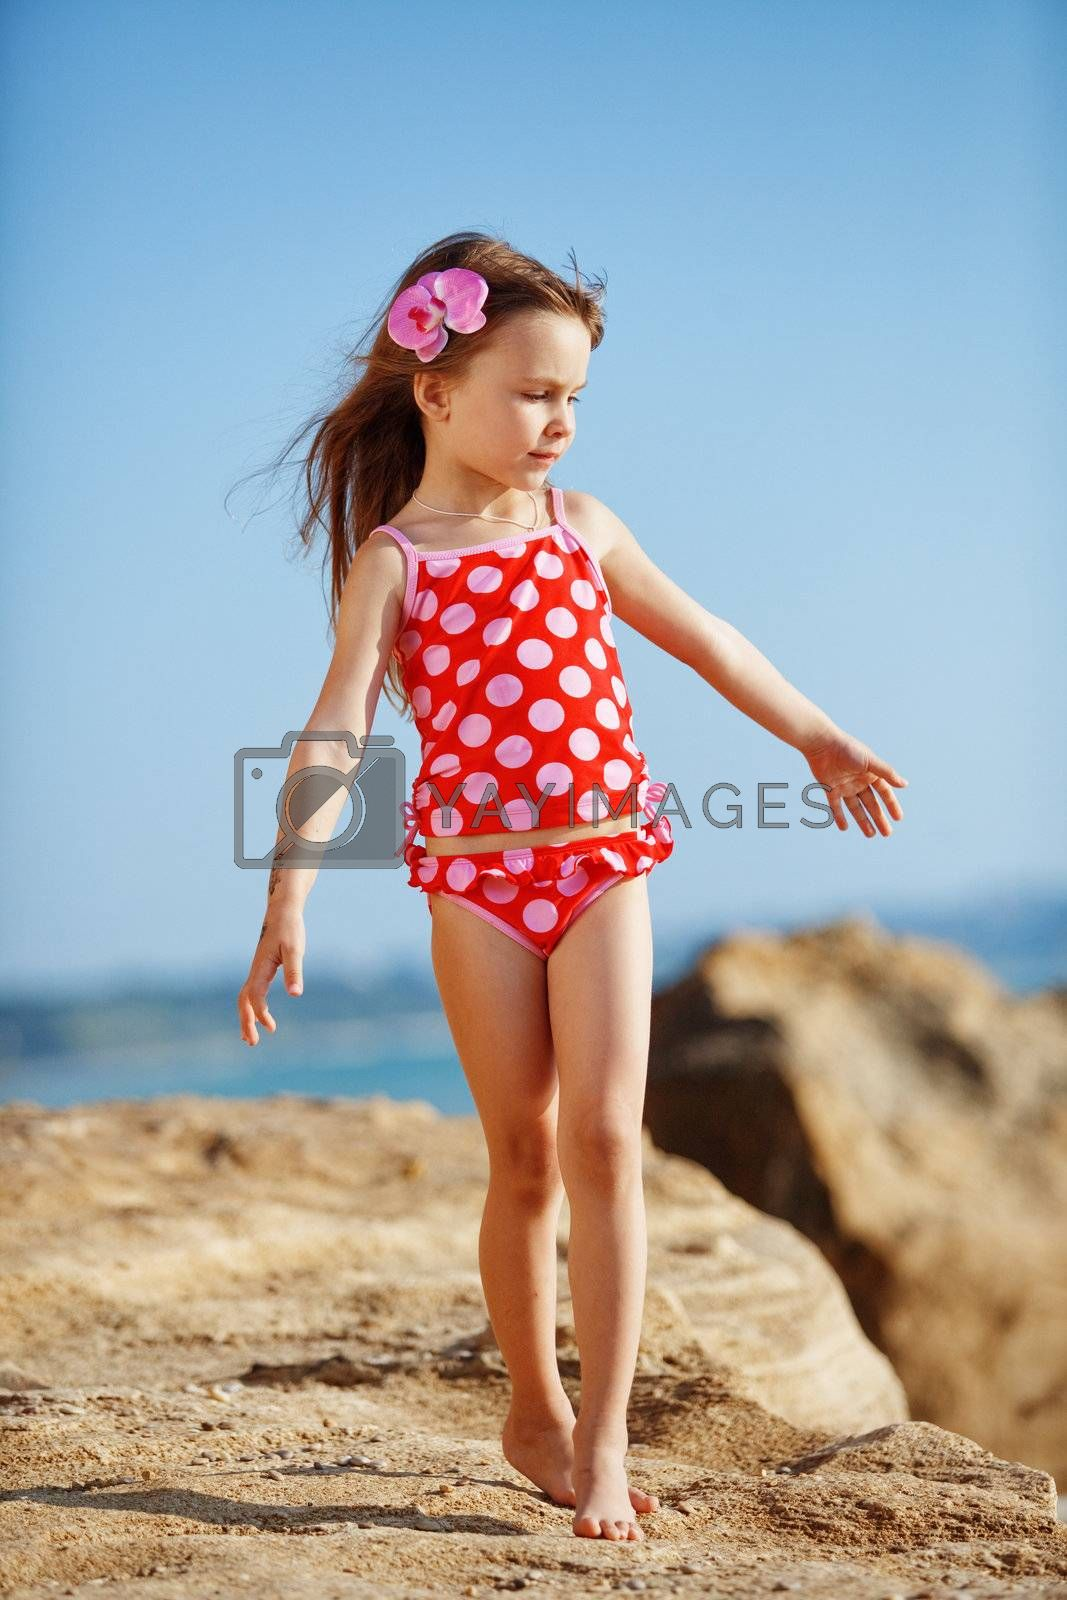 Cute child wearing swimsuit walking at beach in summer